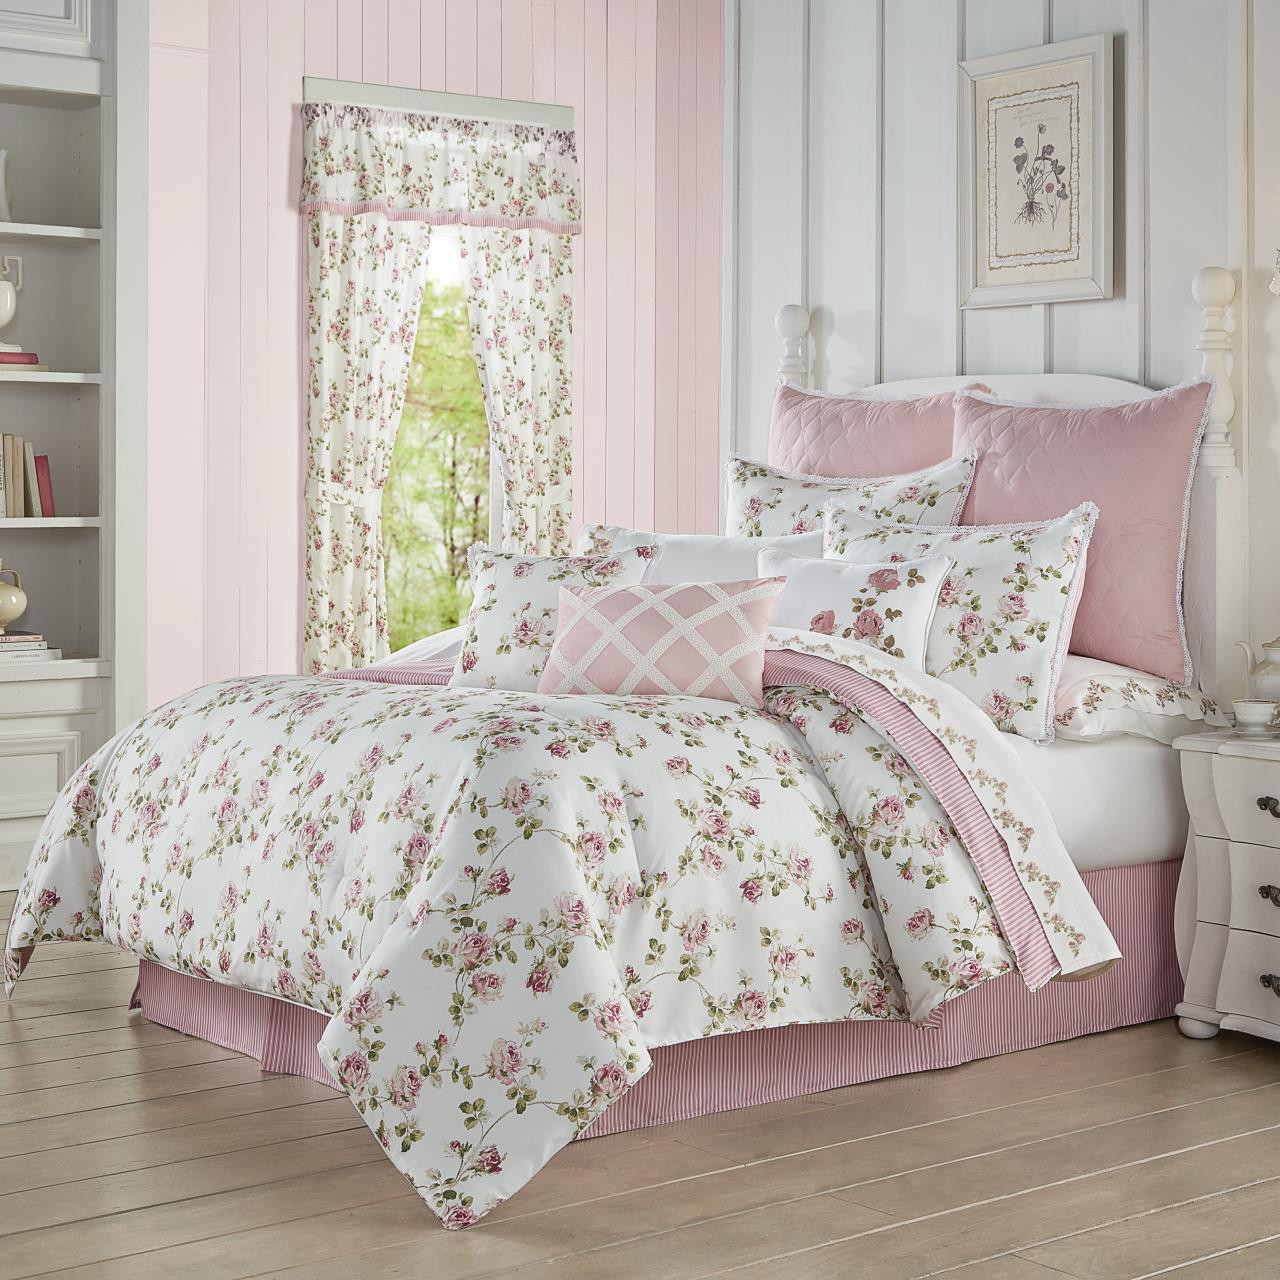 Rosemary Rose Bedding Collection -